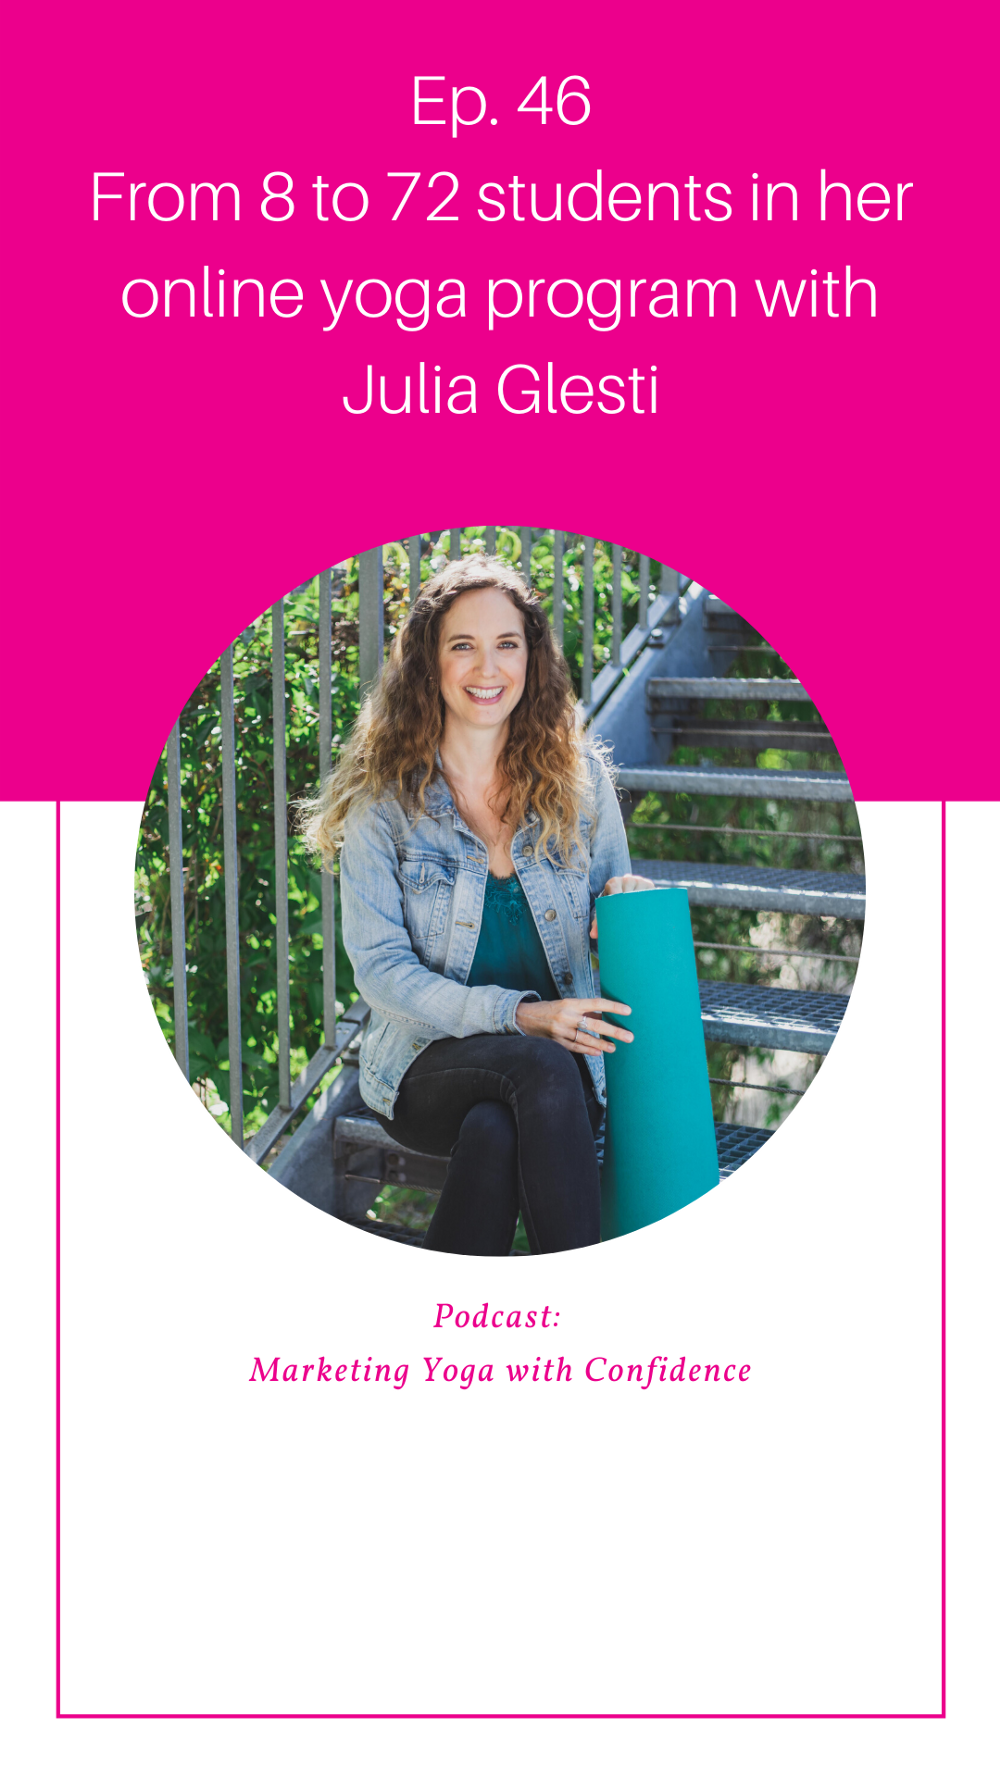 Fill your online yoga classes—interview with Julia Glesti